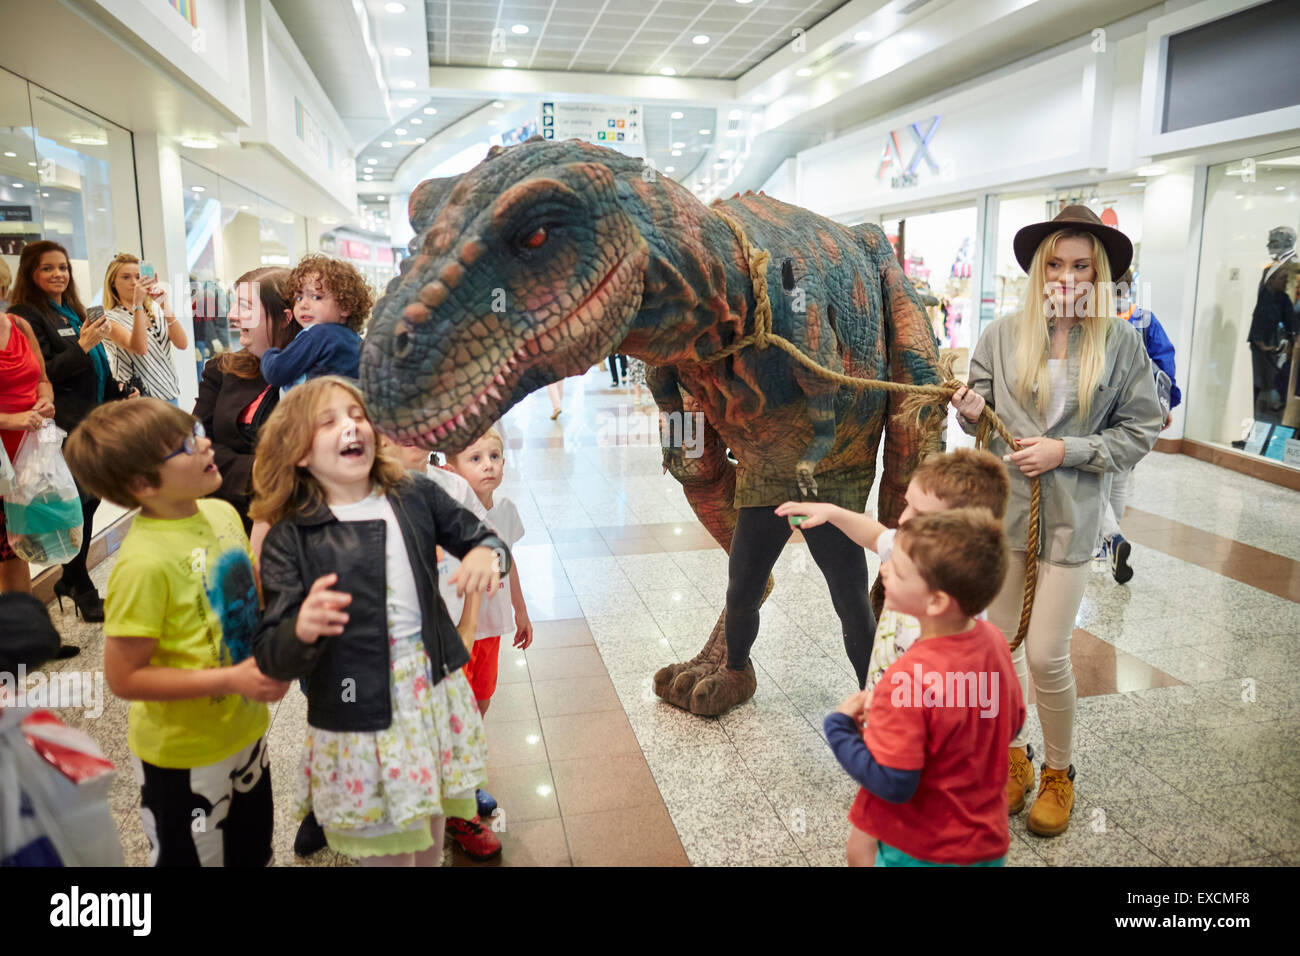 LOWRY OUTLAT MALL AT MEDIACITY Salford Quays  dinosaur visitor brings some Jurassic fun to the weekends markets - Stock Image